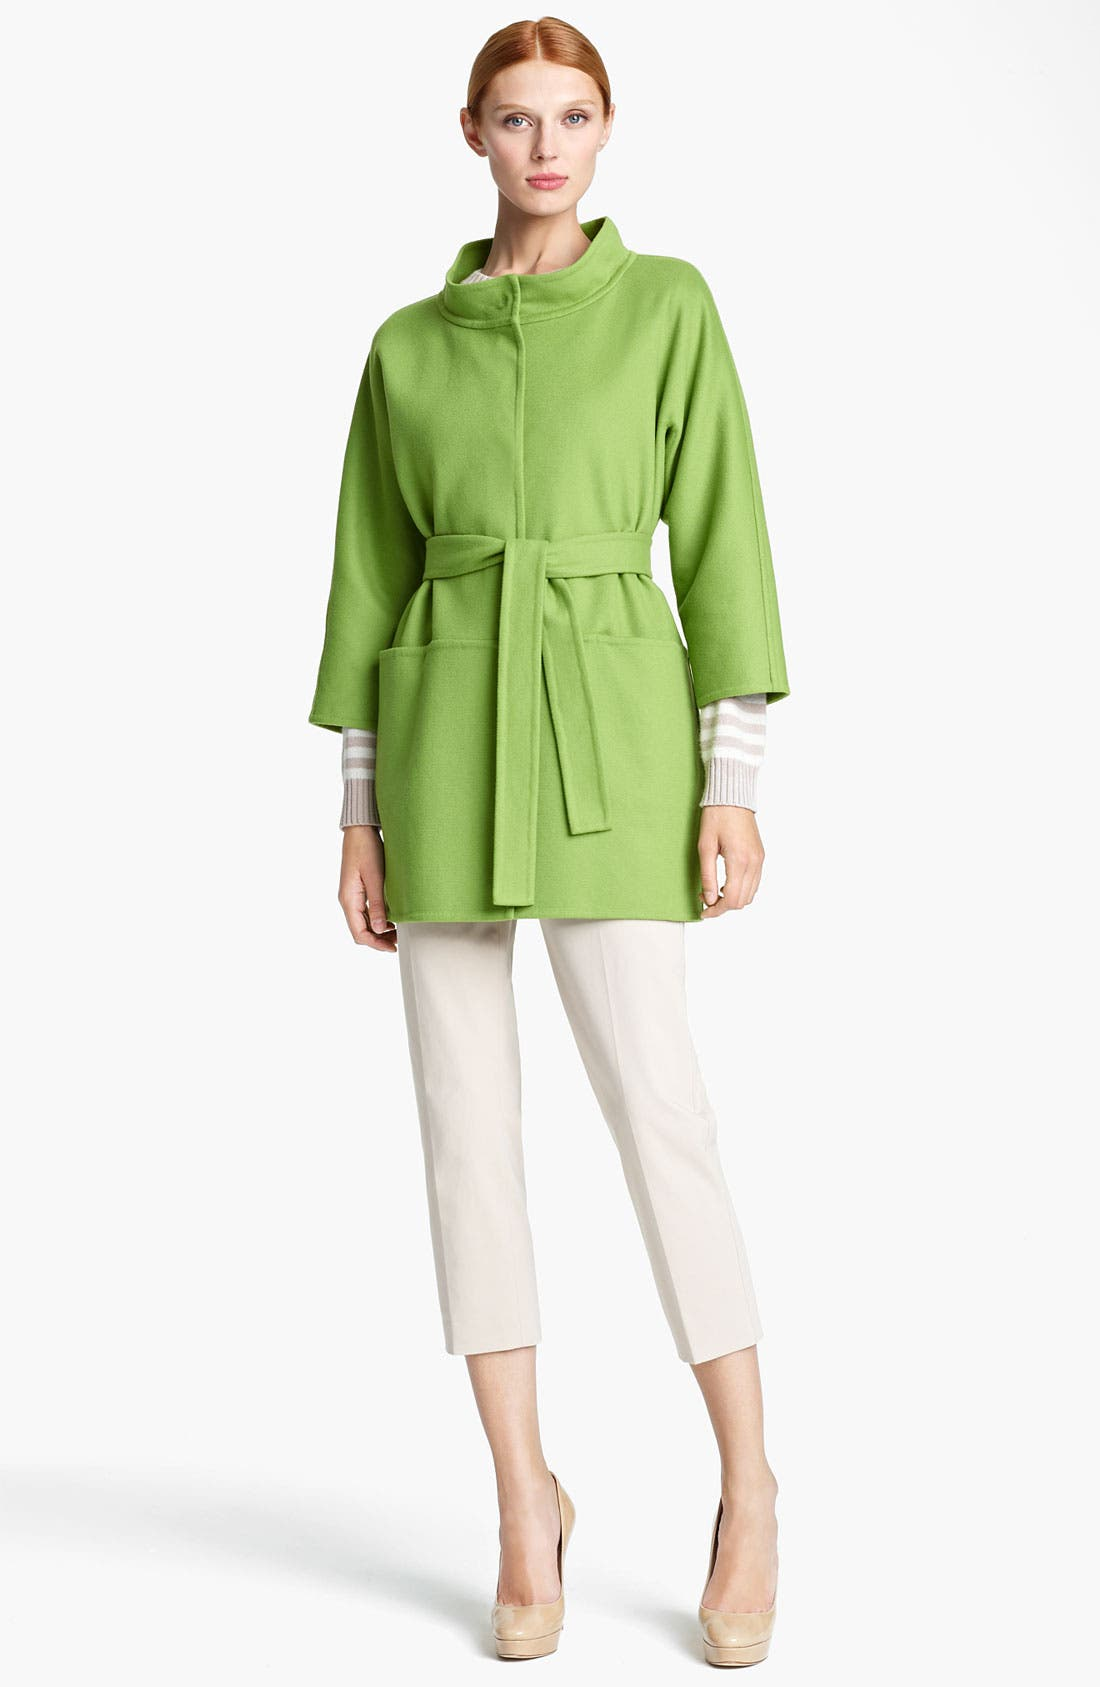 Alternate Image 1 Selected - Max Mara 'Lipari' Belted Wool Blend Coat